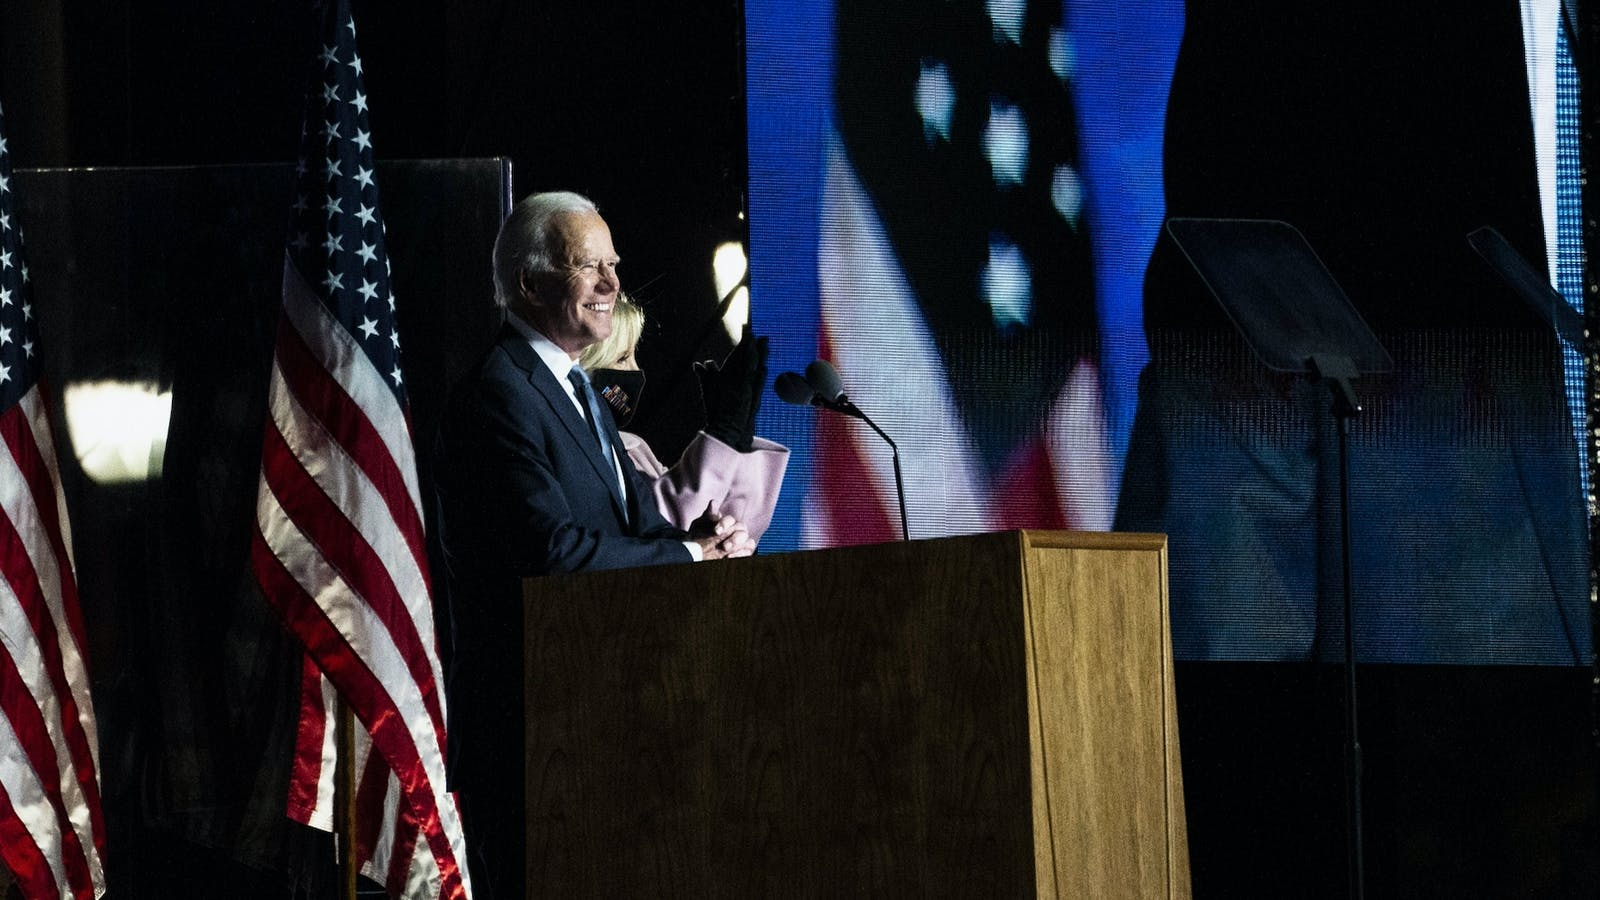 Democratic presidential nominee Joe Biden on Tuesday night in Delaware. Photo by Bloomberg